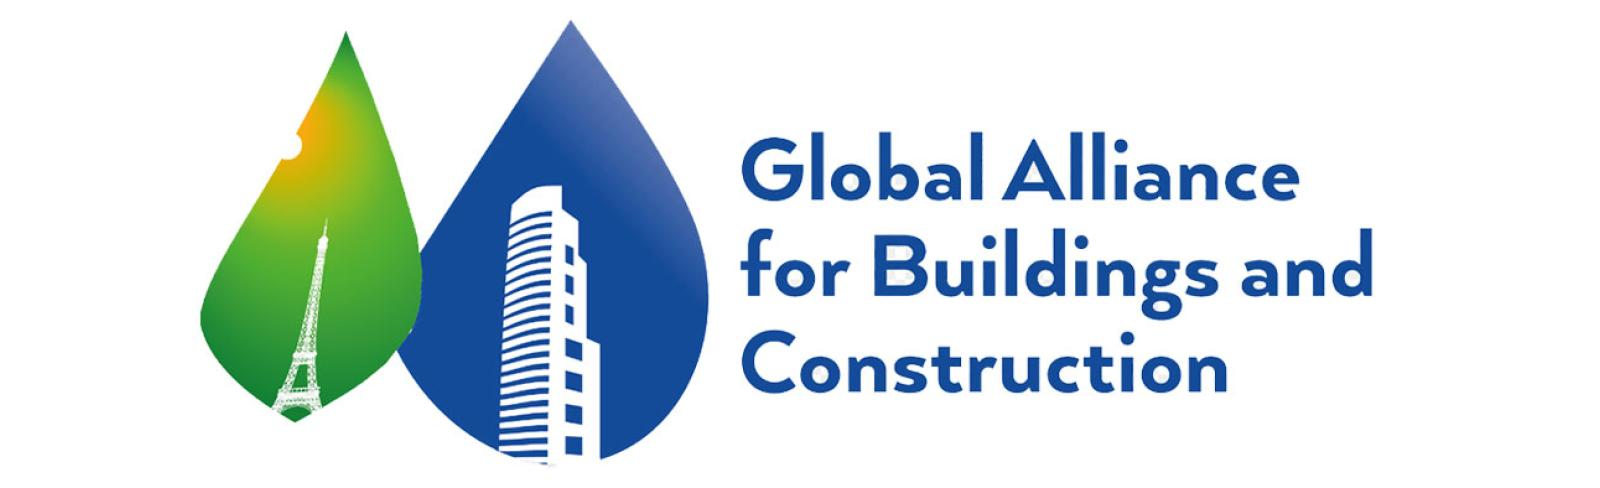 ESMAP Joins the Global Alliance for Buildings and Construction at COP22